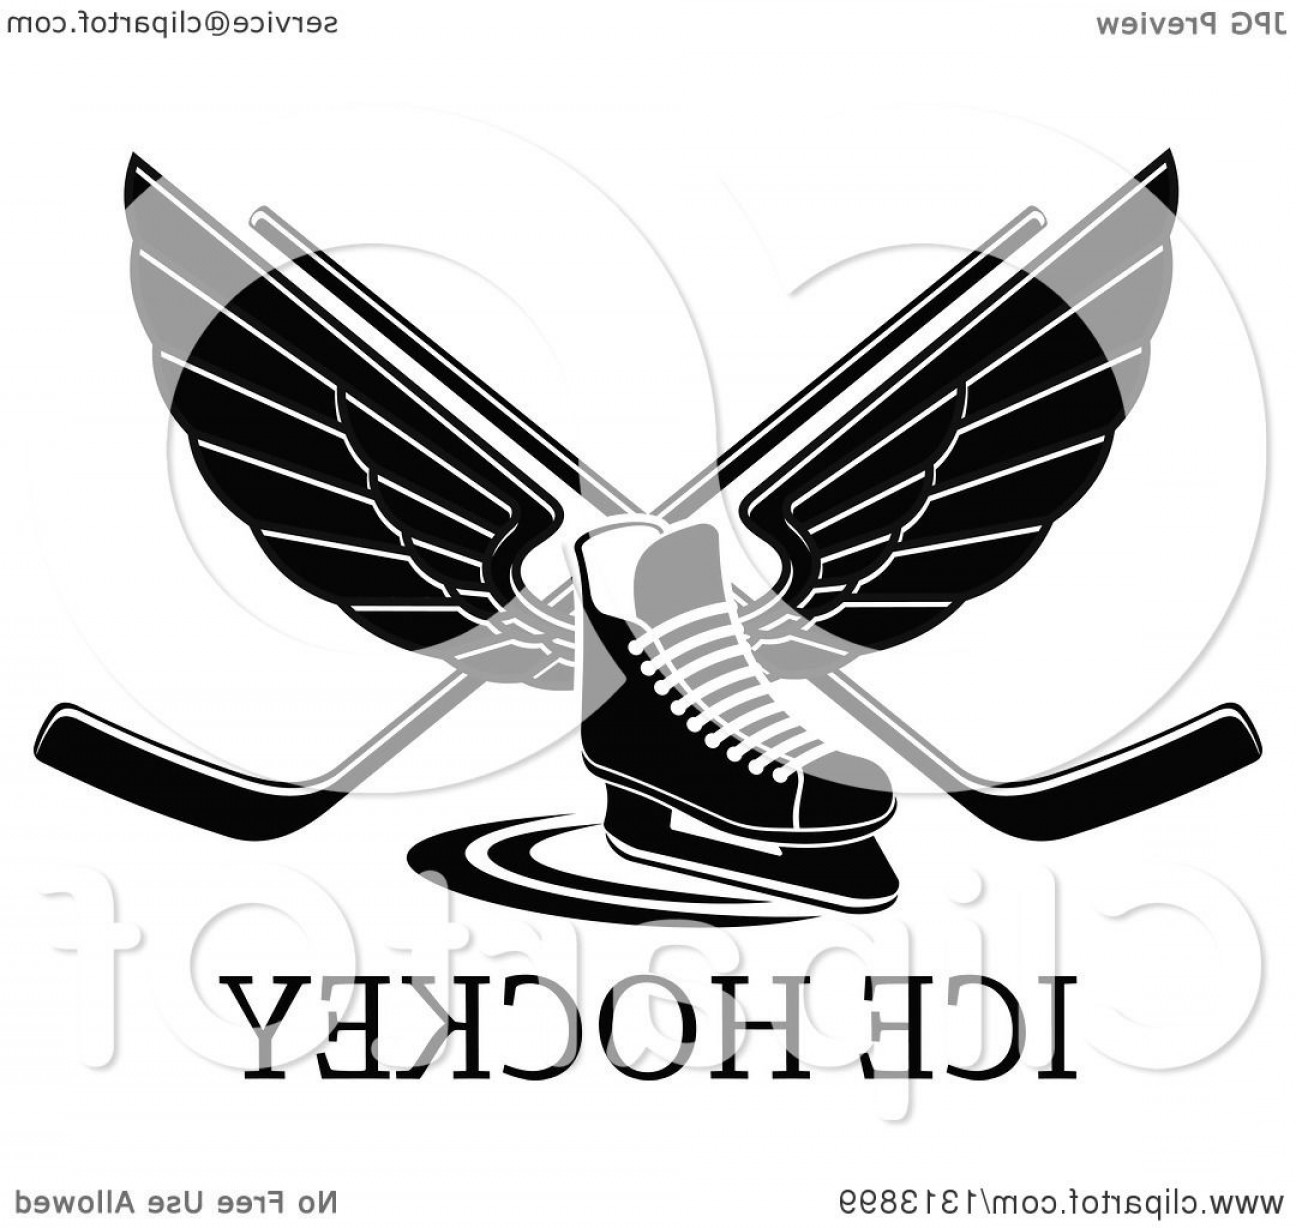 Hockey Skates Vector Art: Black And White Winged Ice Hockey Skate With Crossed Sticks Over Text